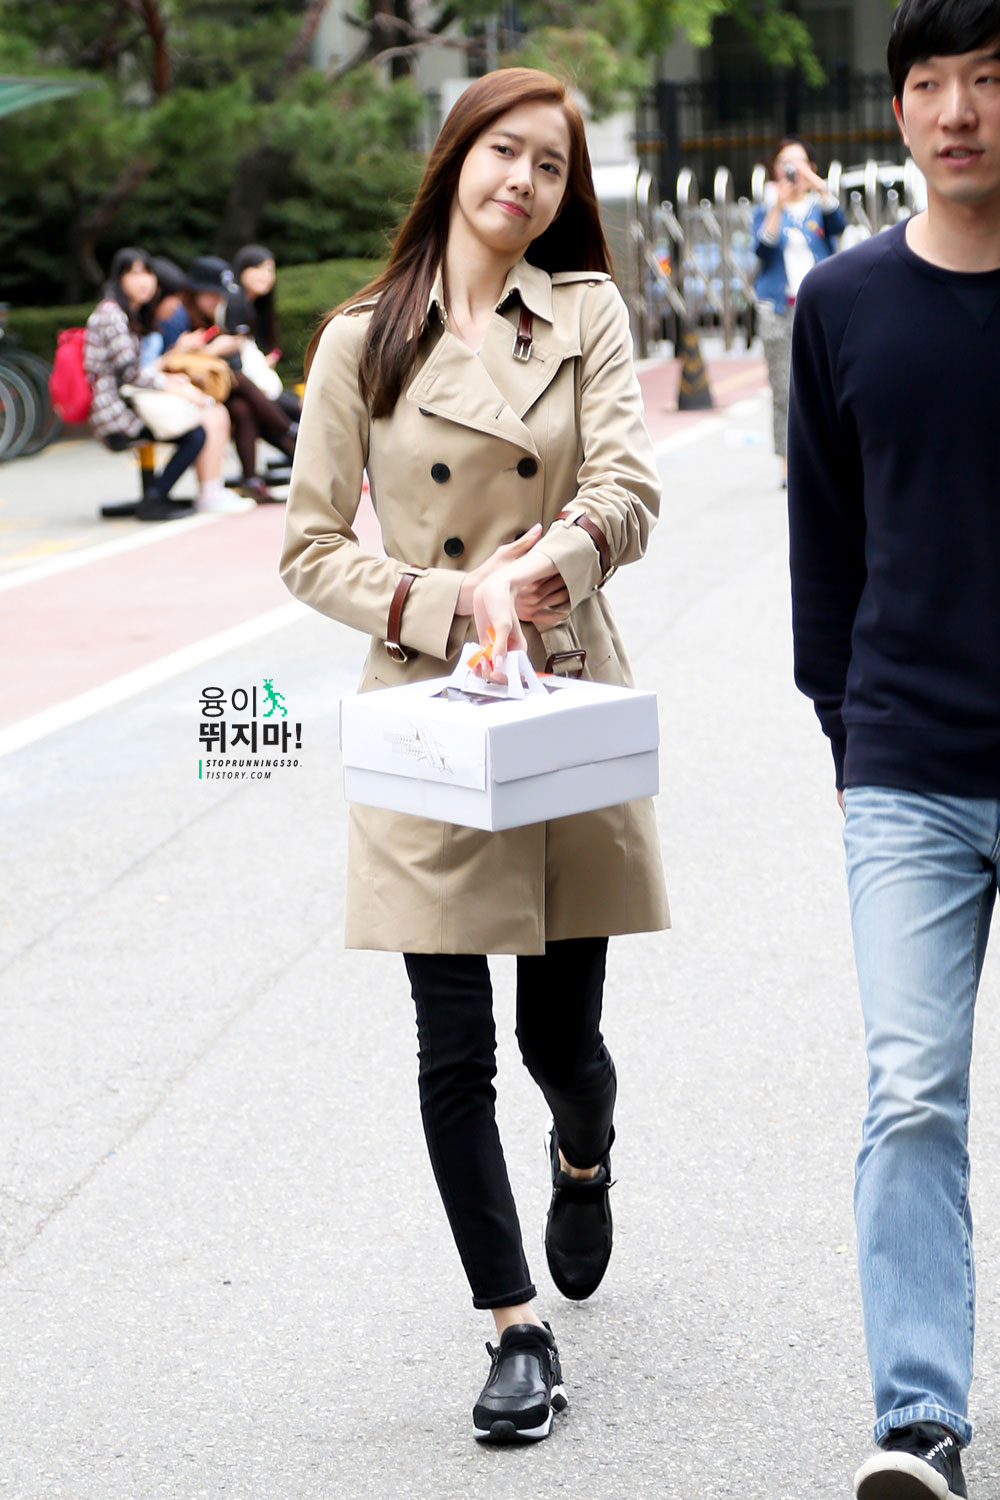 Yoona cake delivery service